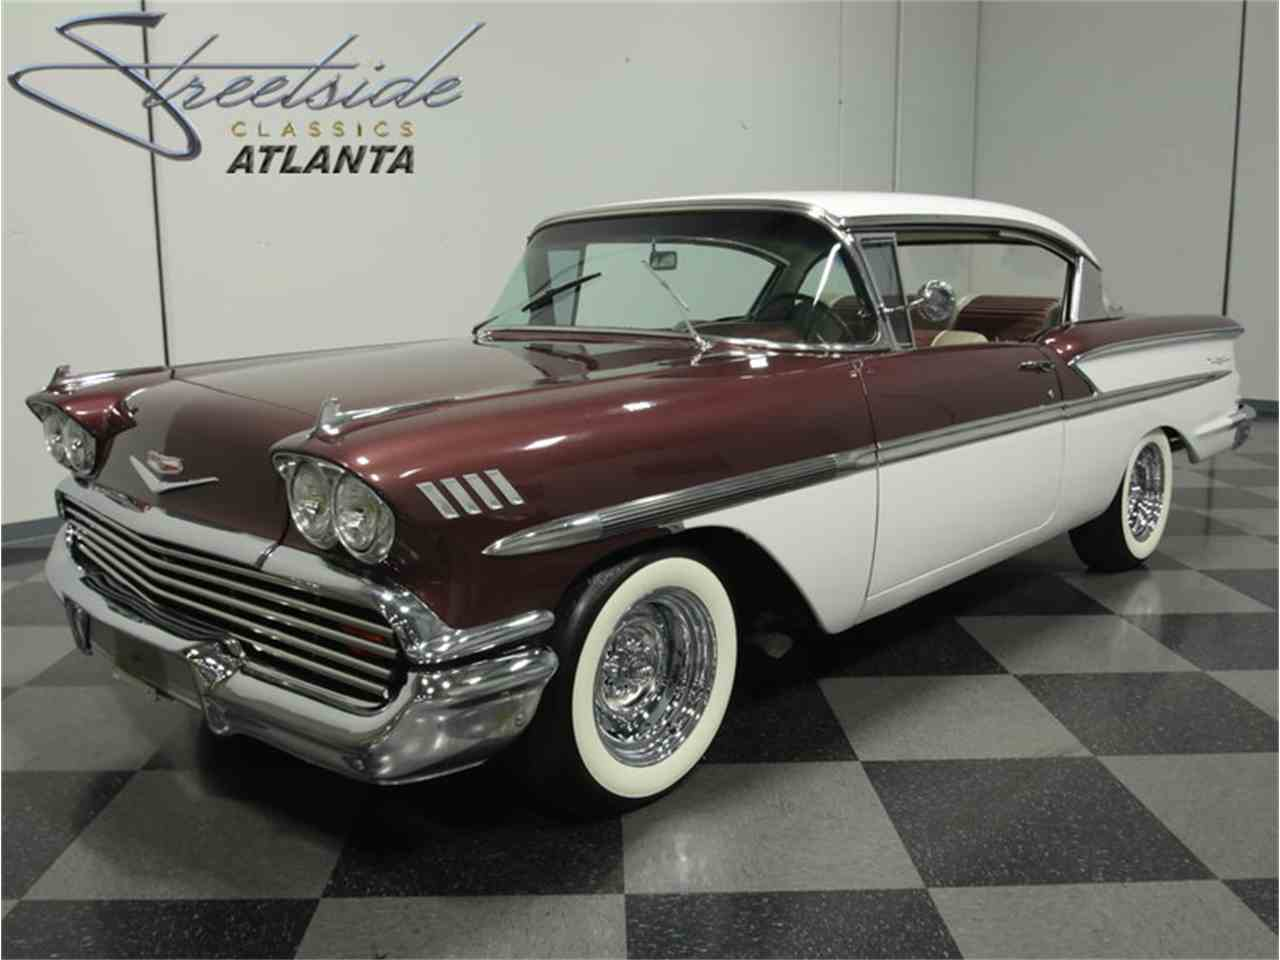 Chevrolet bel air hardtop for sale upcoming chevrolet - 1958 Chevrolet Bel Air For Sale Cc 780473